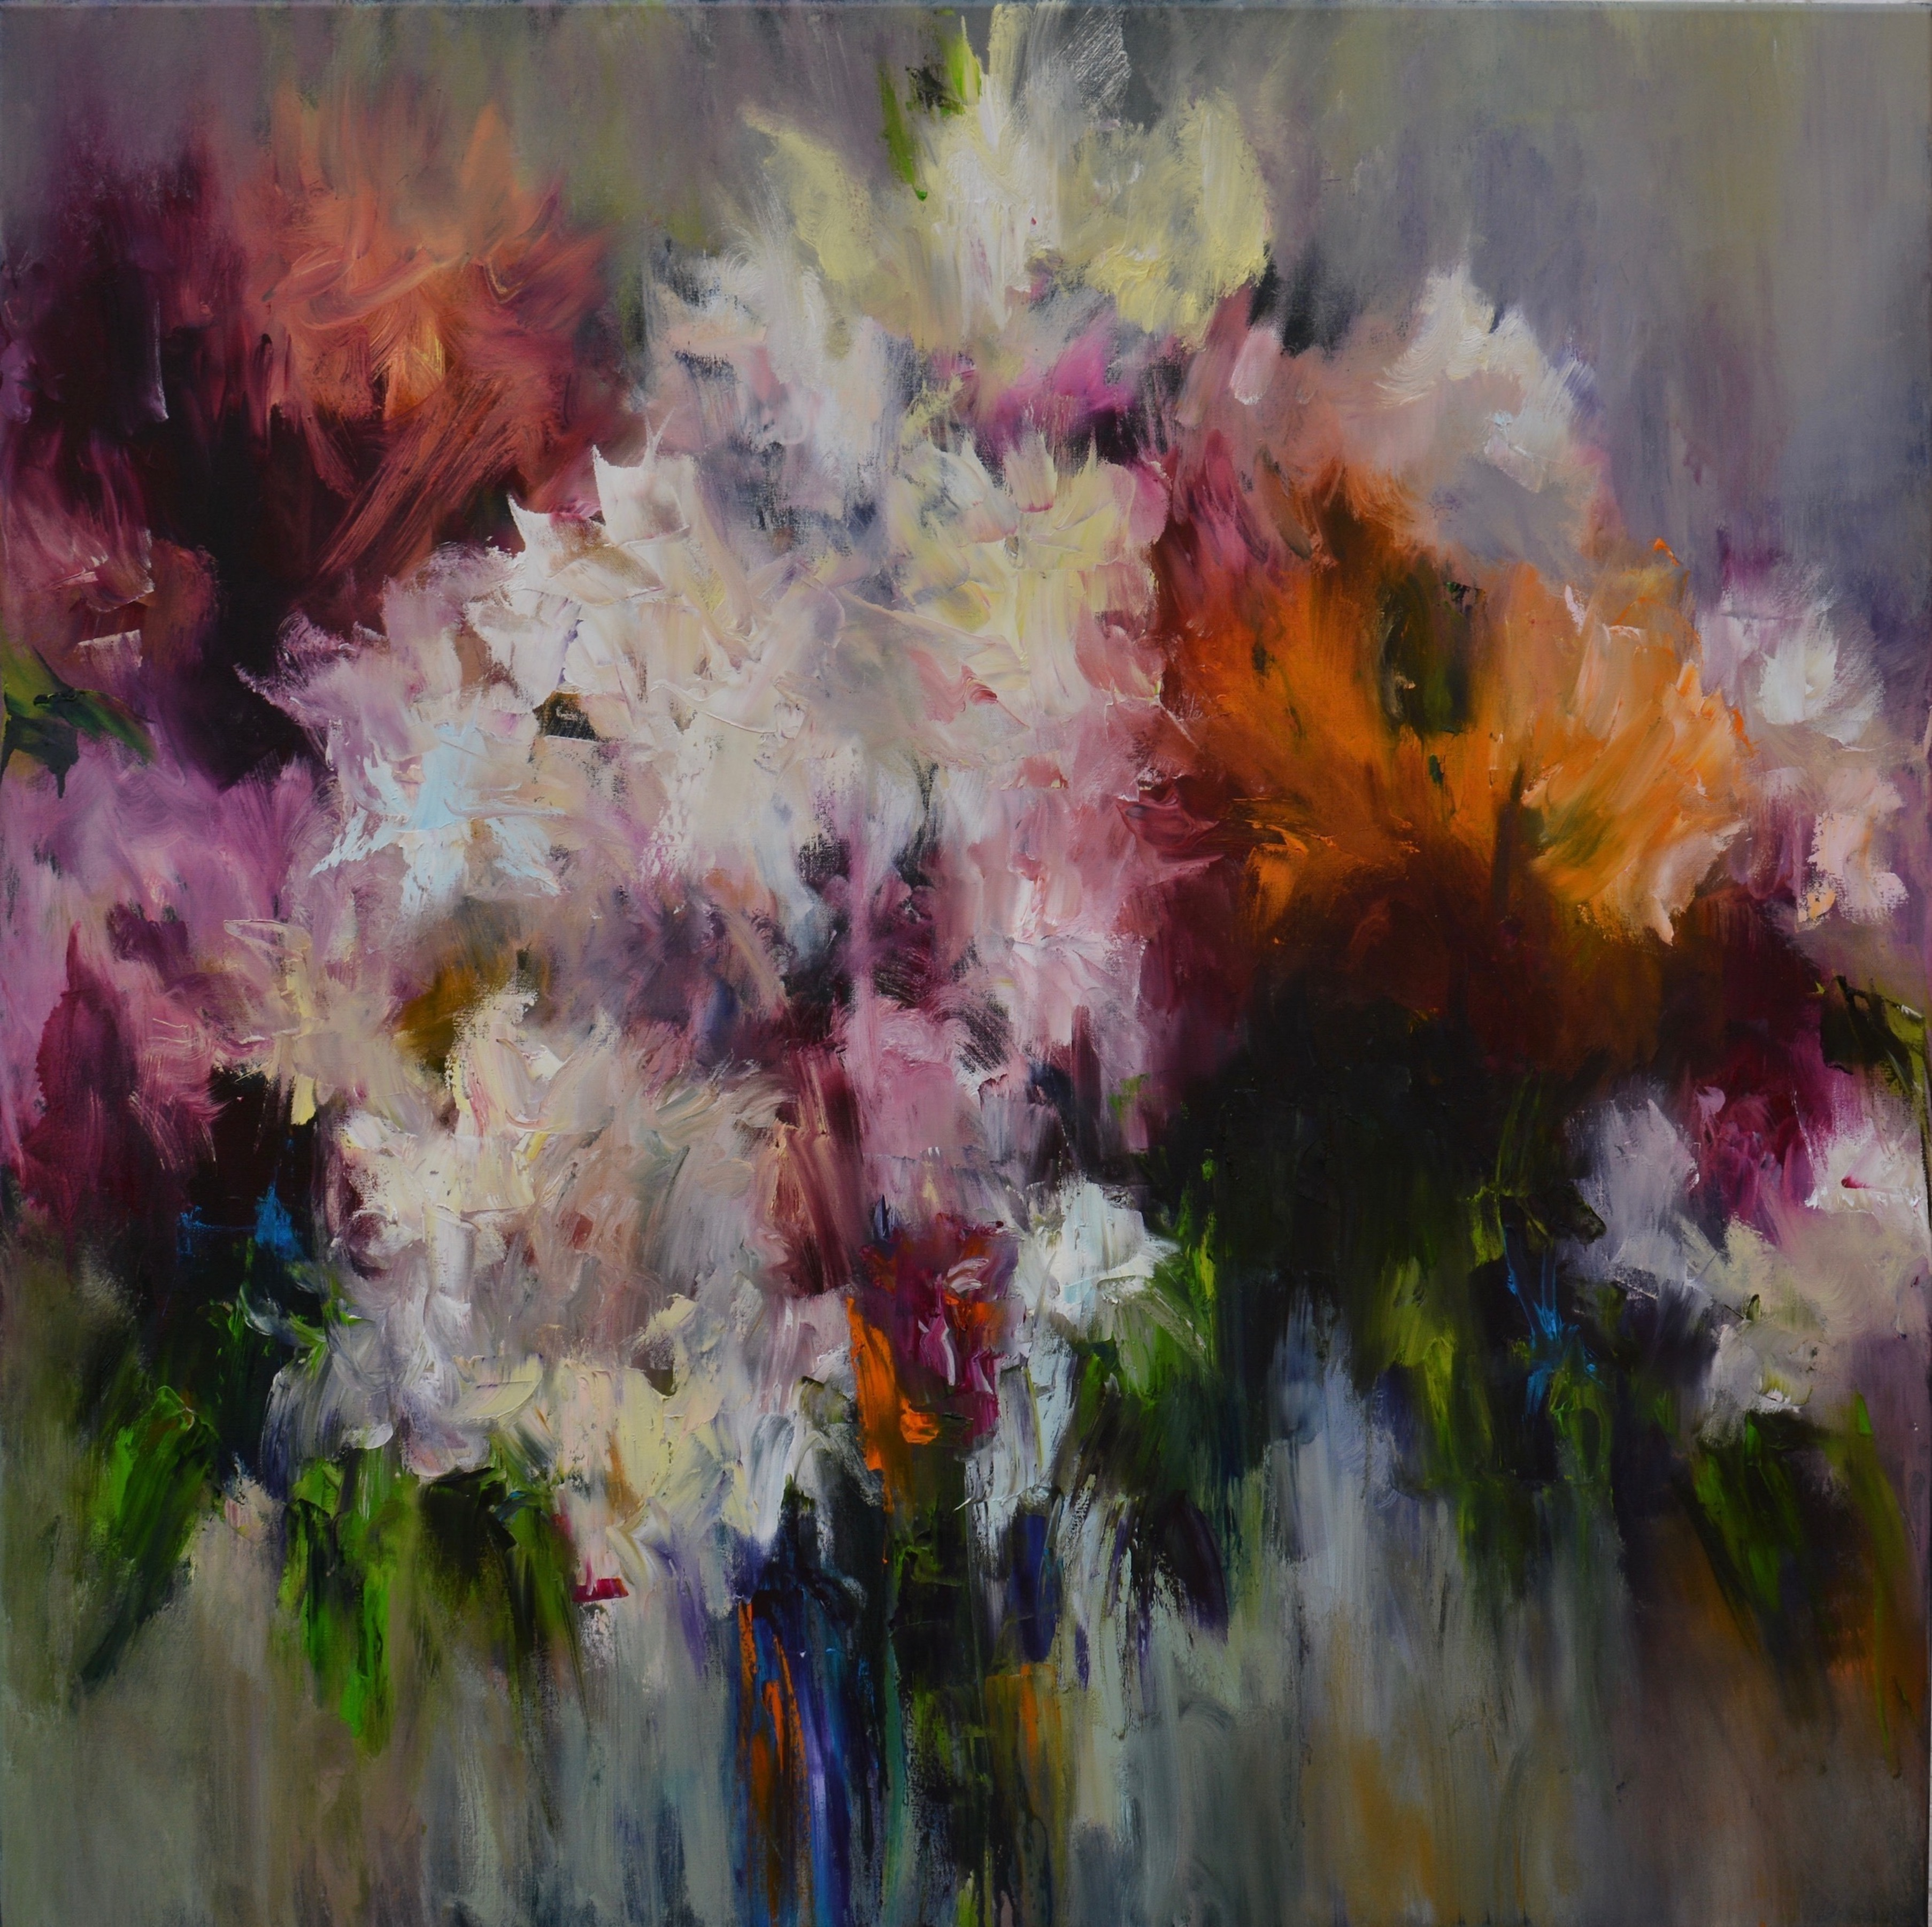 Flowers 002 artwork by Artur Amoura - art listed for sale on Artplode